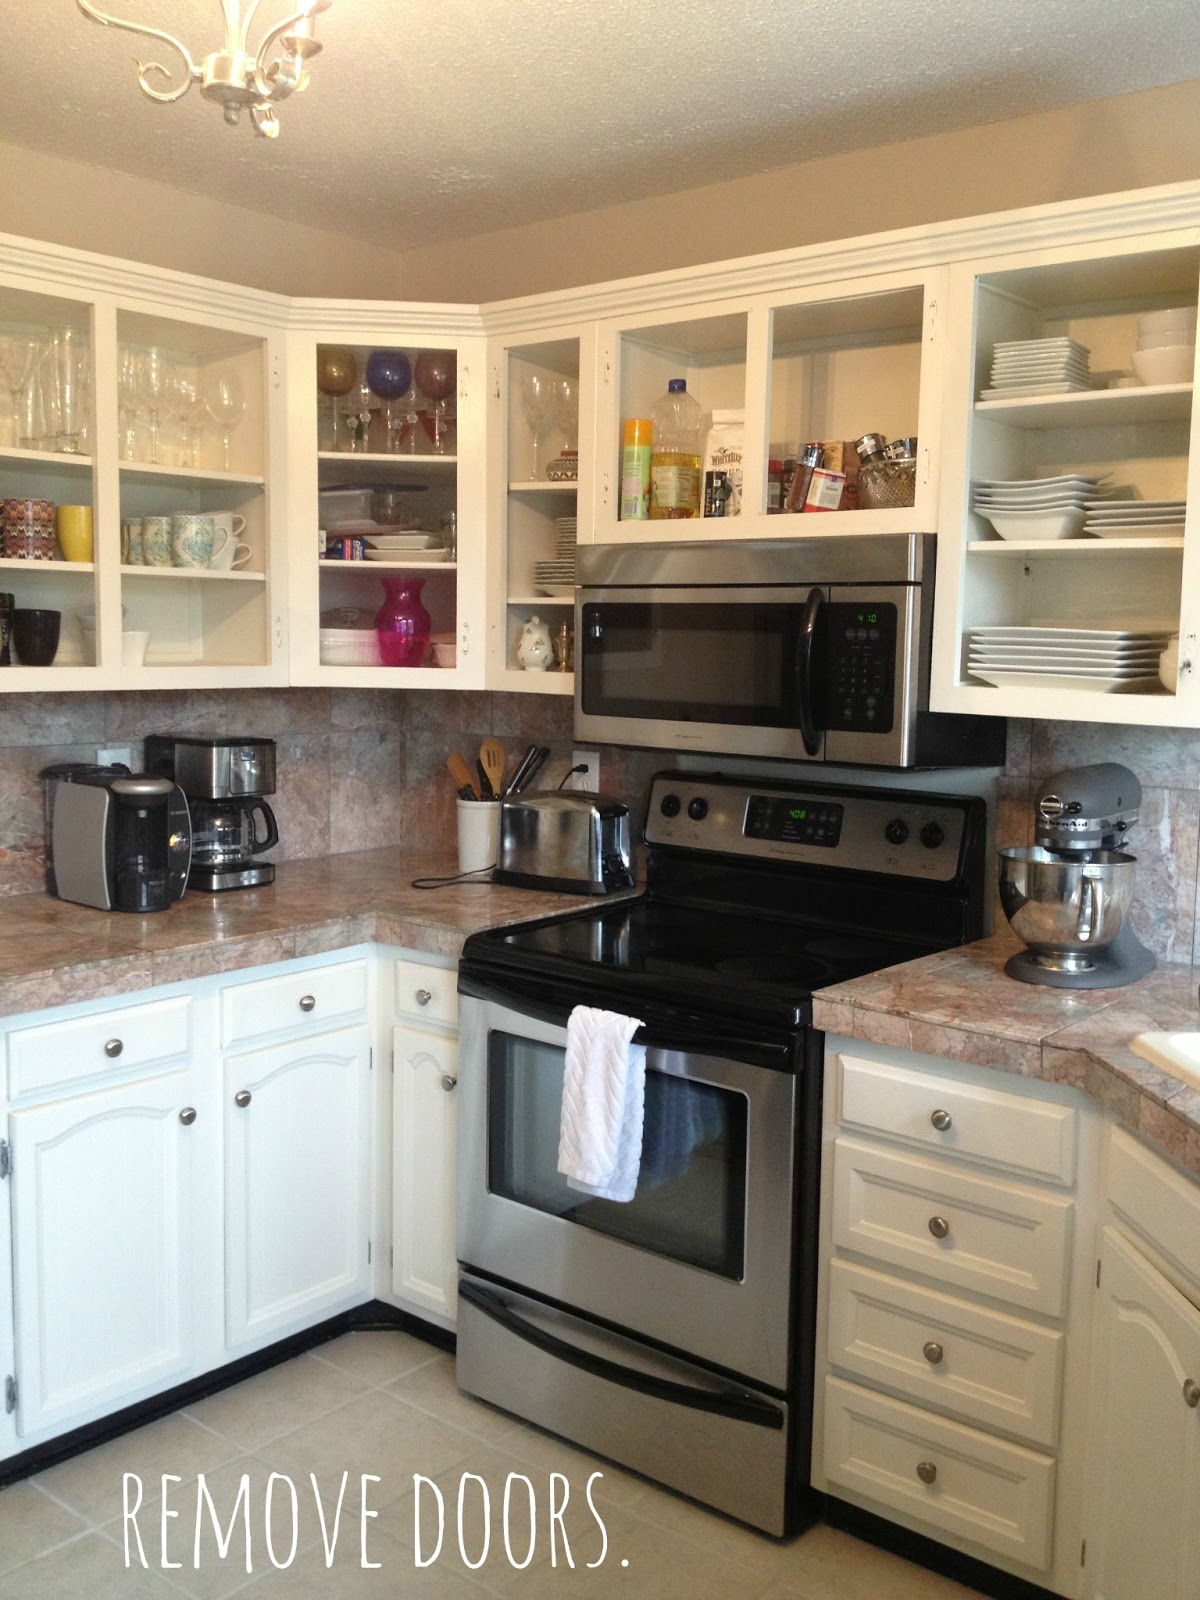 Best Way To Remove Paint From Kitchen Cabinets